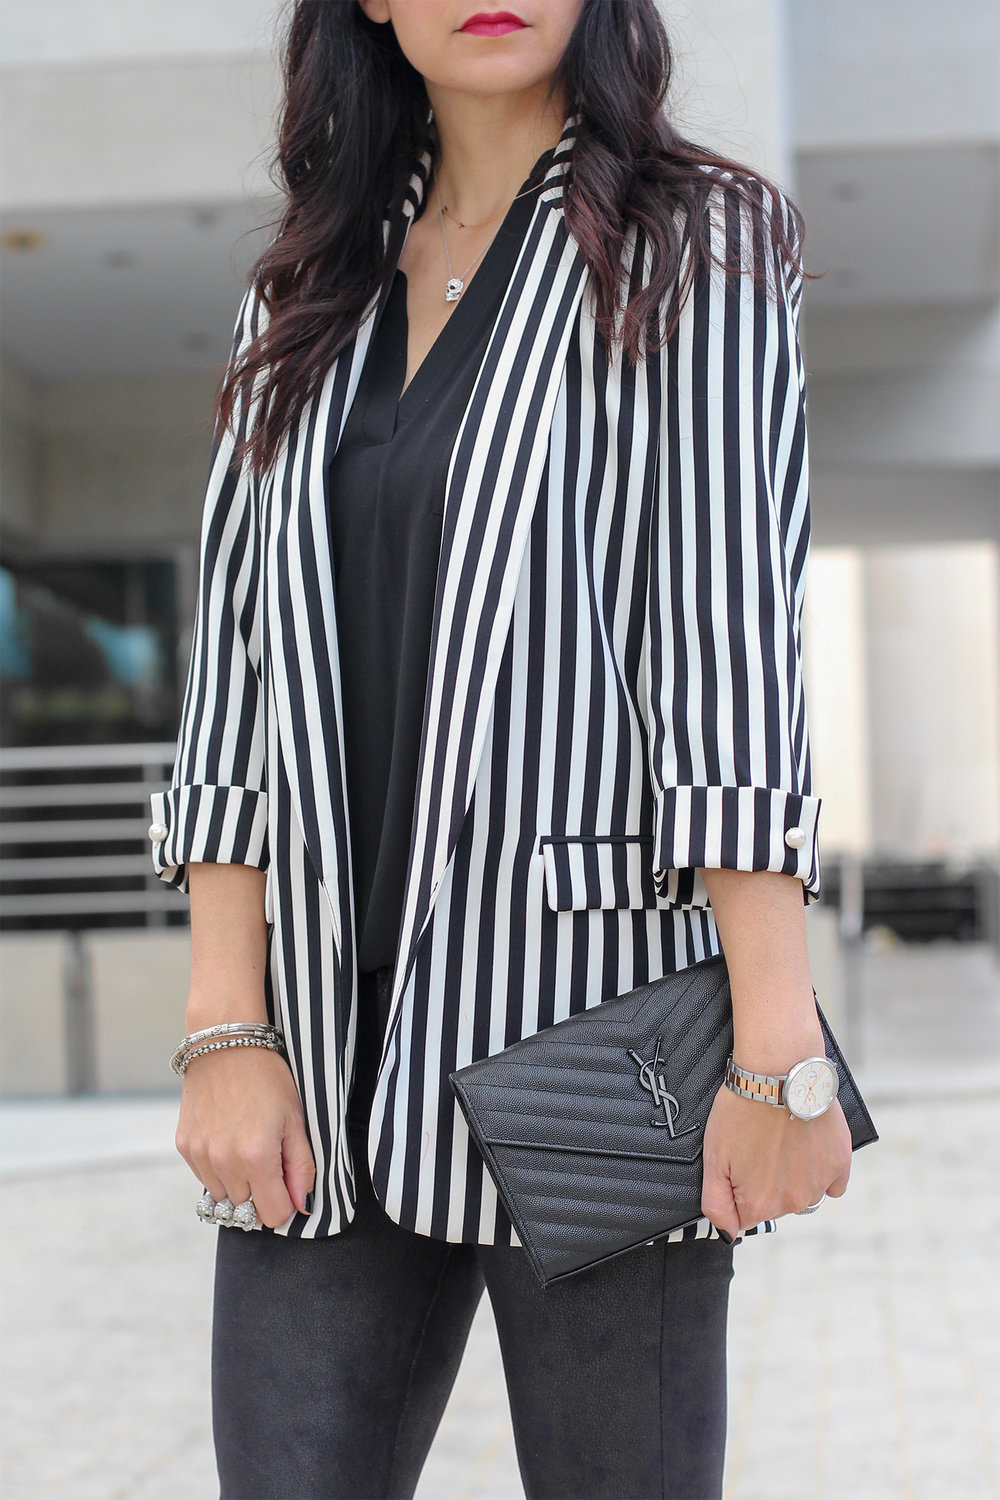 Black and White Stripe Blazer, YSL Matelasse Clutch